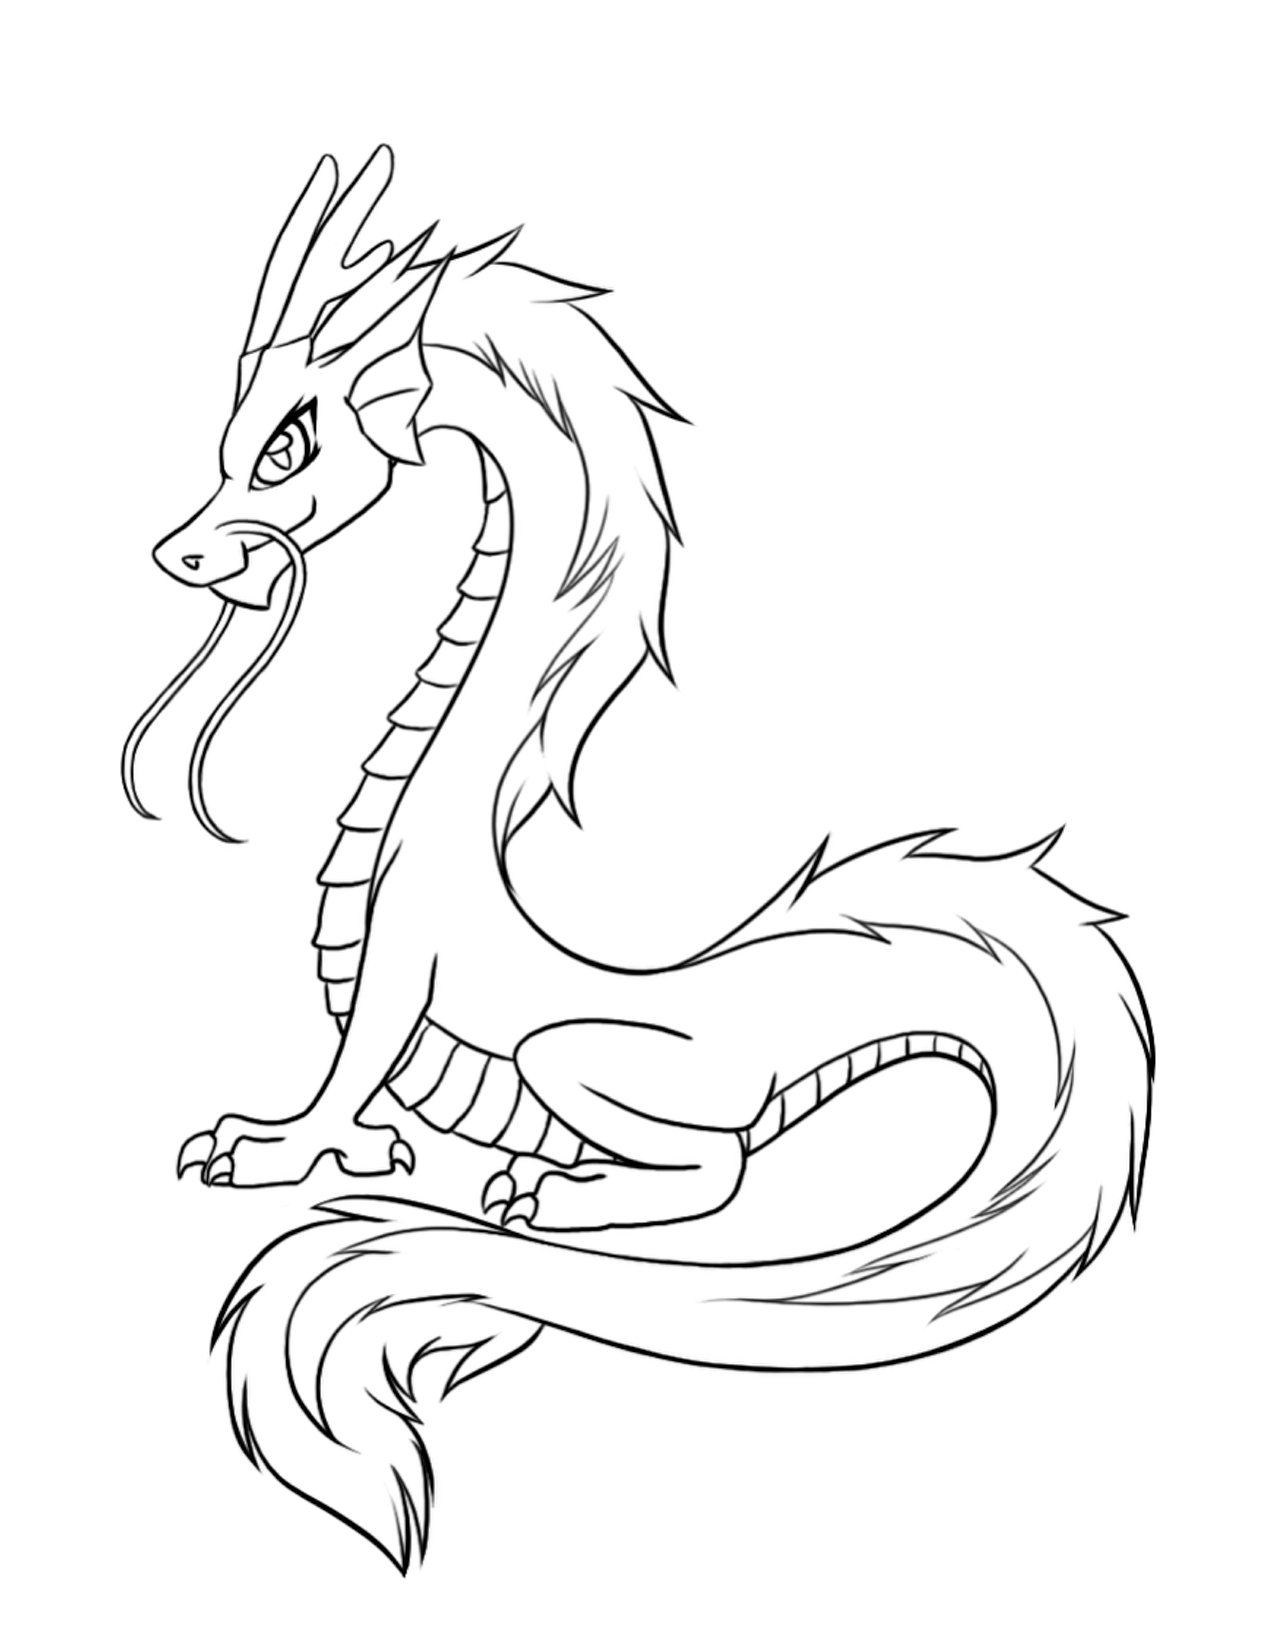 dragon coloring pages free realistic dragon coloring pages at getdrawings free download pages dragon coloring free